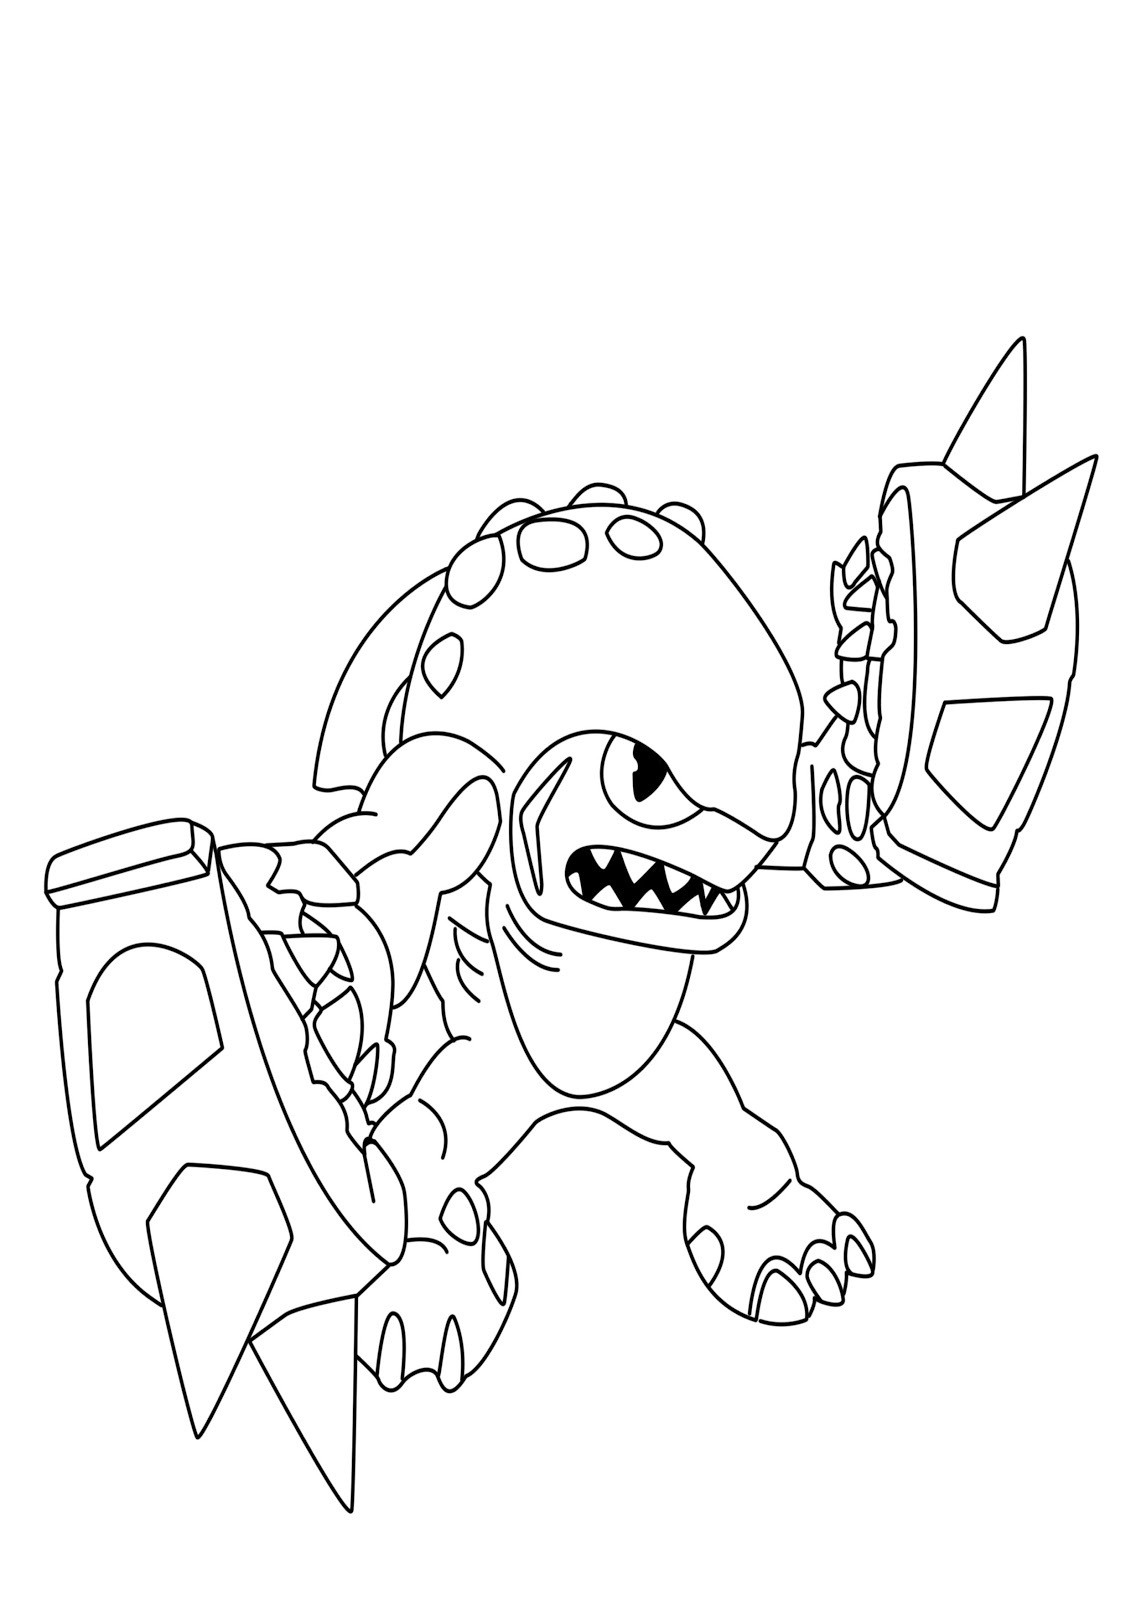 Best ideas about Skylanders Giants Printable Coloring Pages . Save or Pin Skylander s Coloring Pages on Pinterest Now.